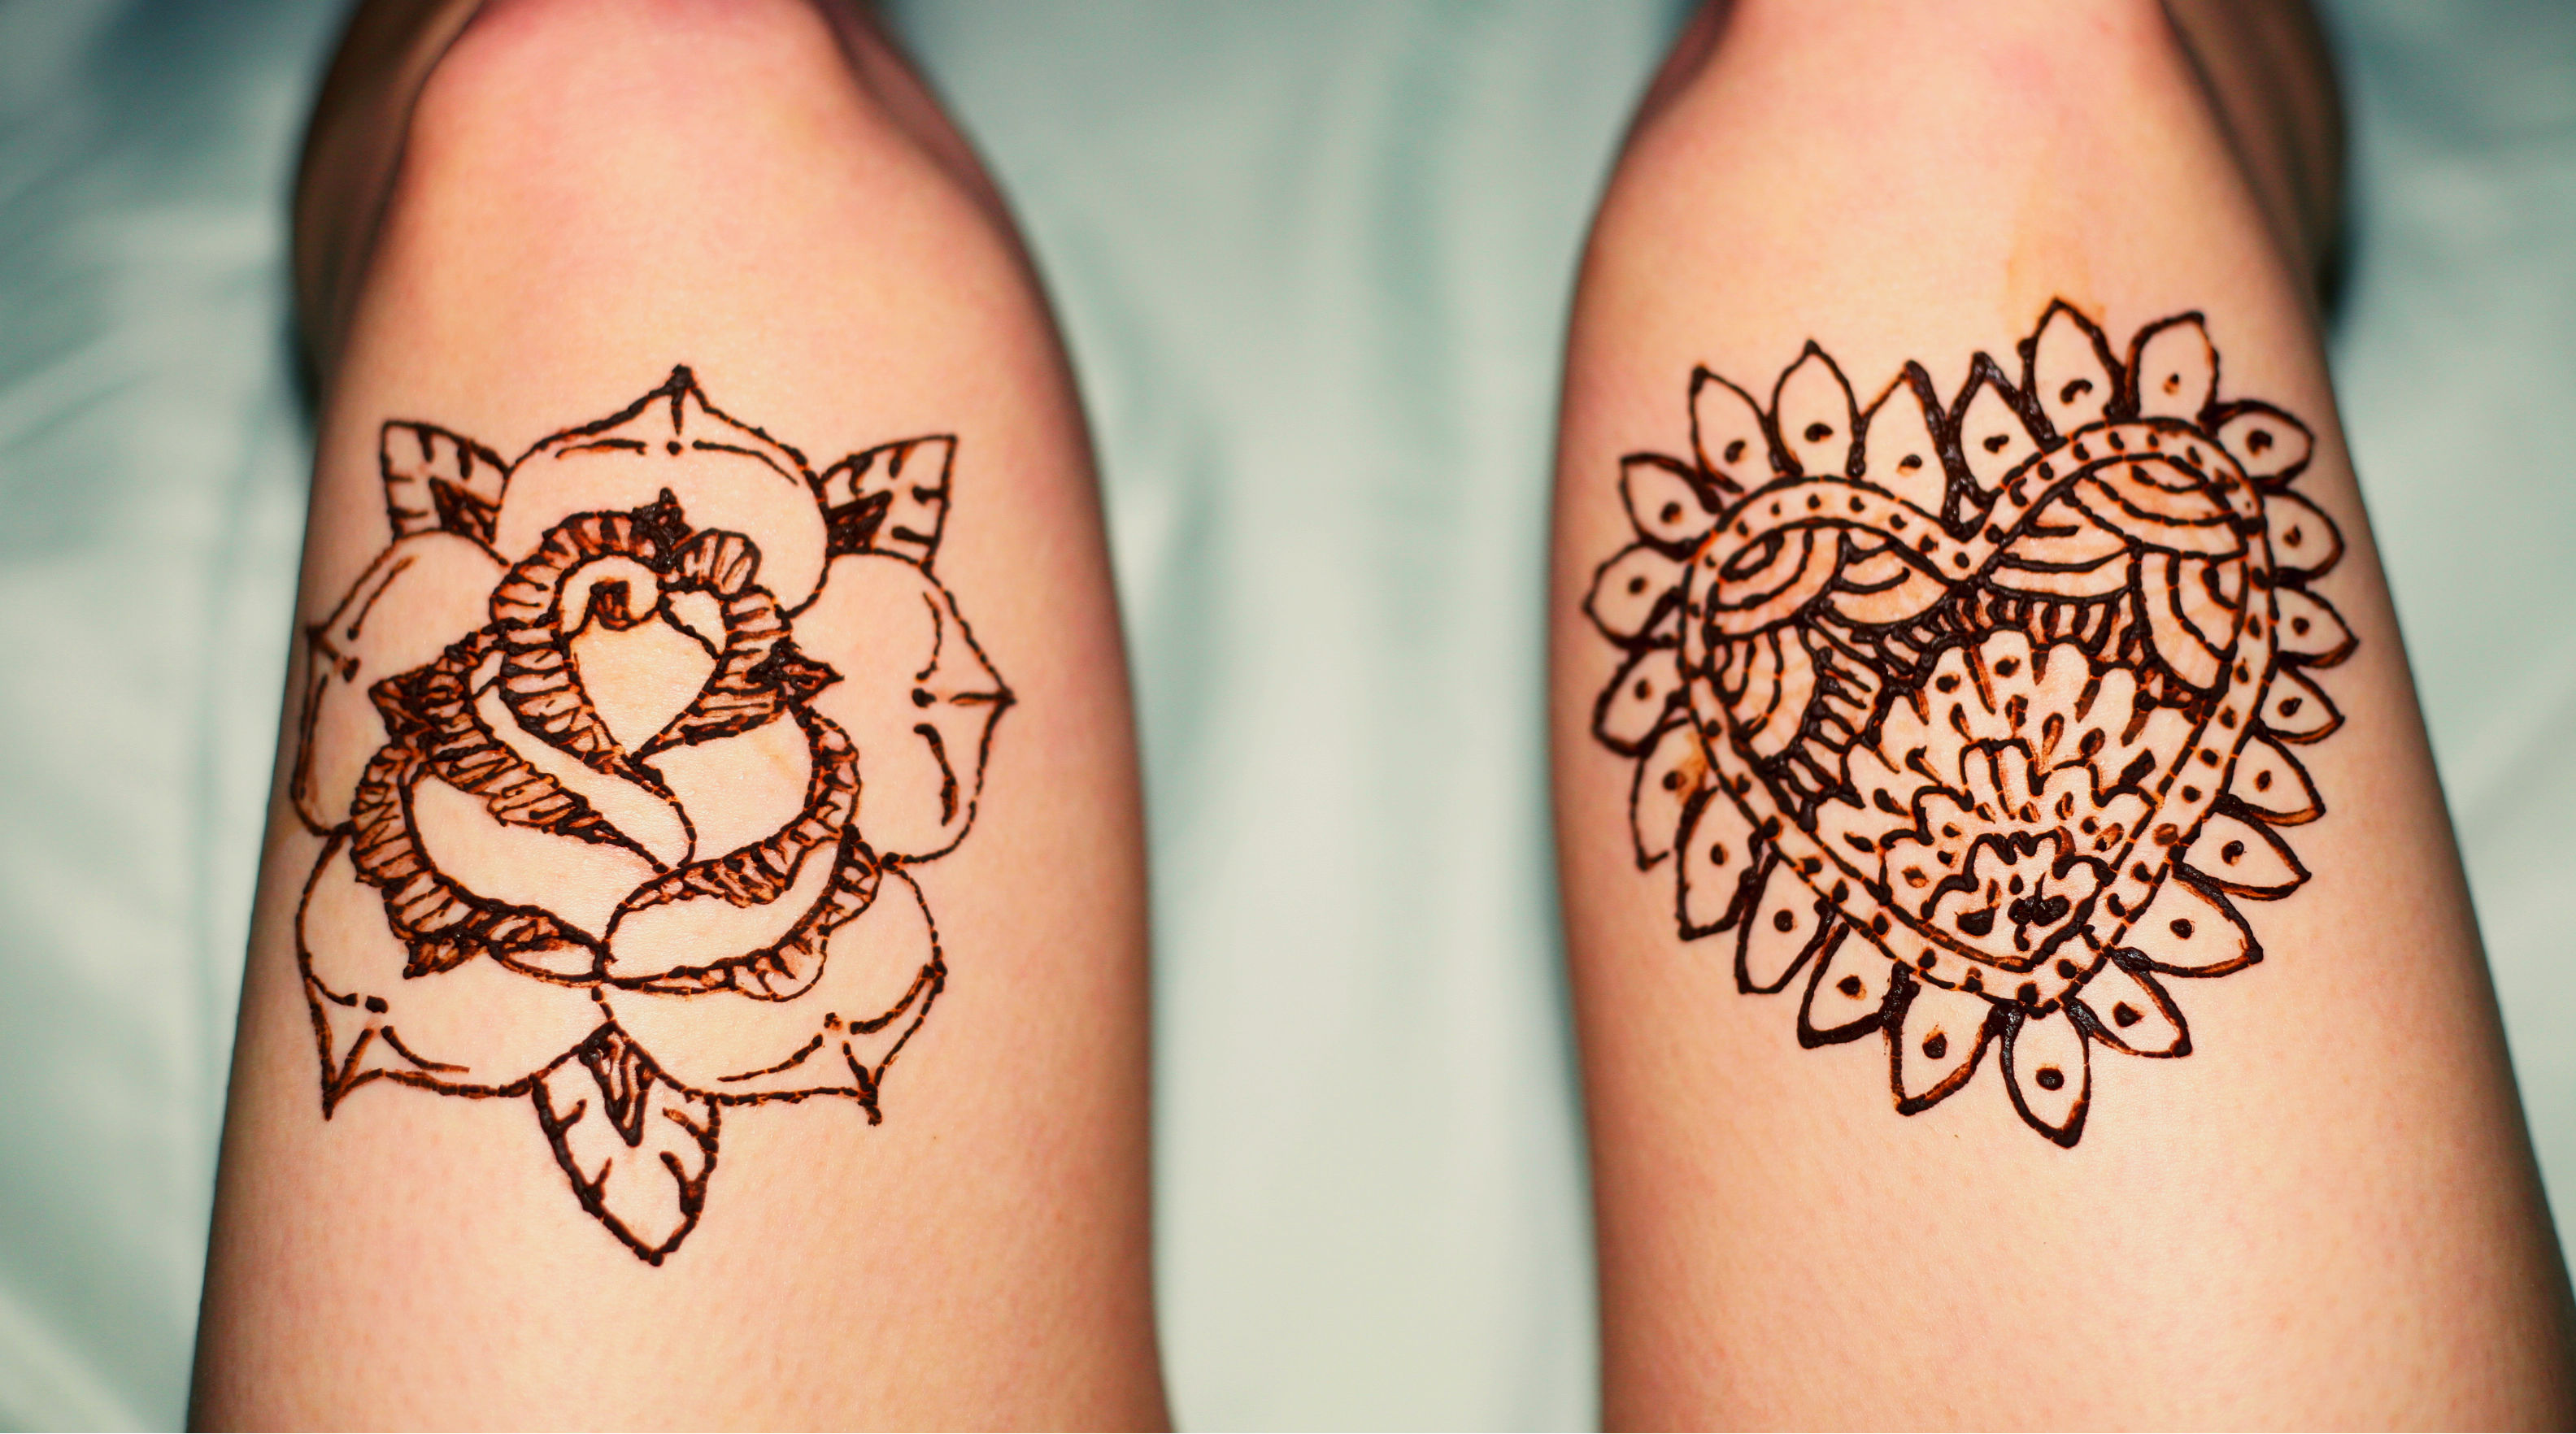 Henna Tattoo Designs For Legs Tattoo Bytes